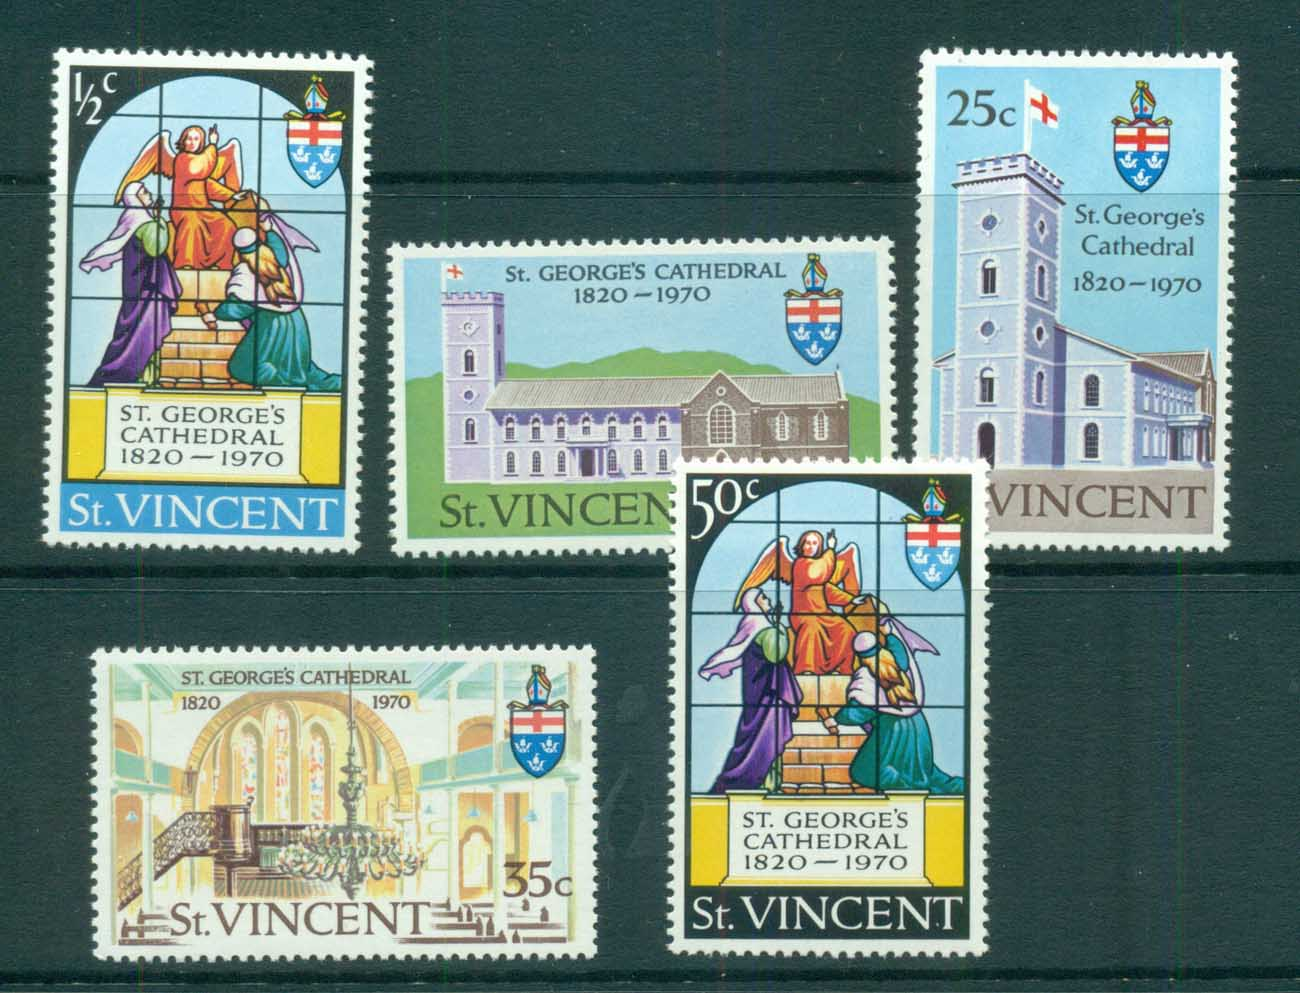 St Vincent 1970 St George's Anglican Cathederal MUH lot72701